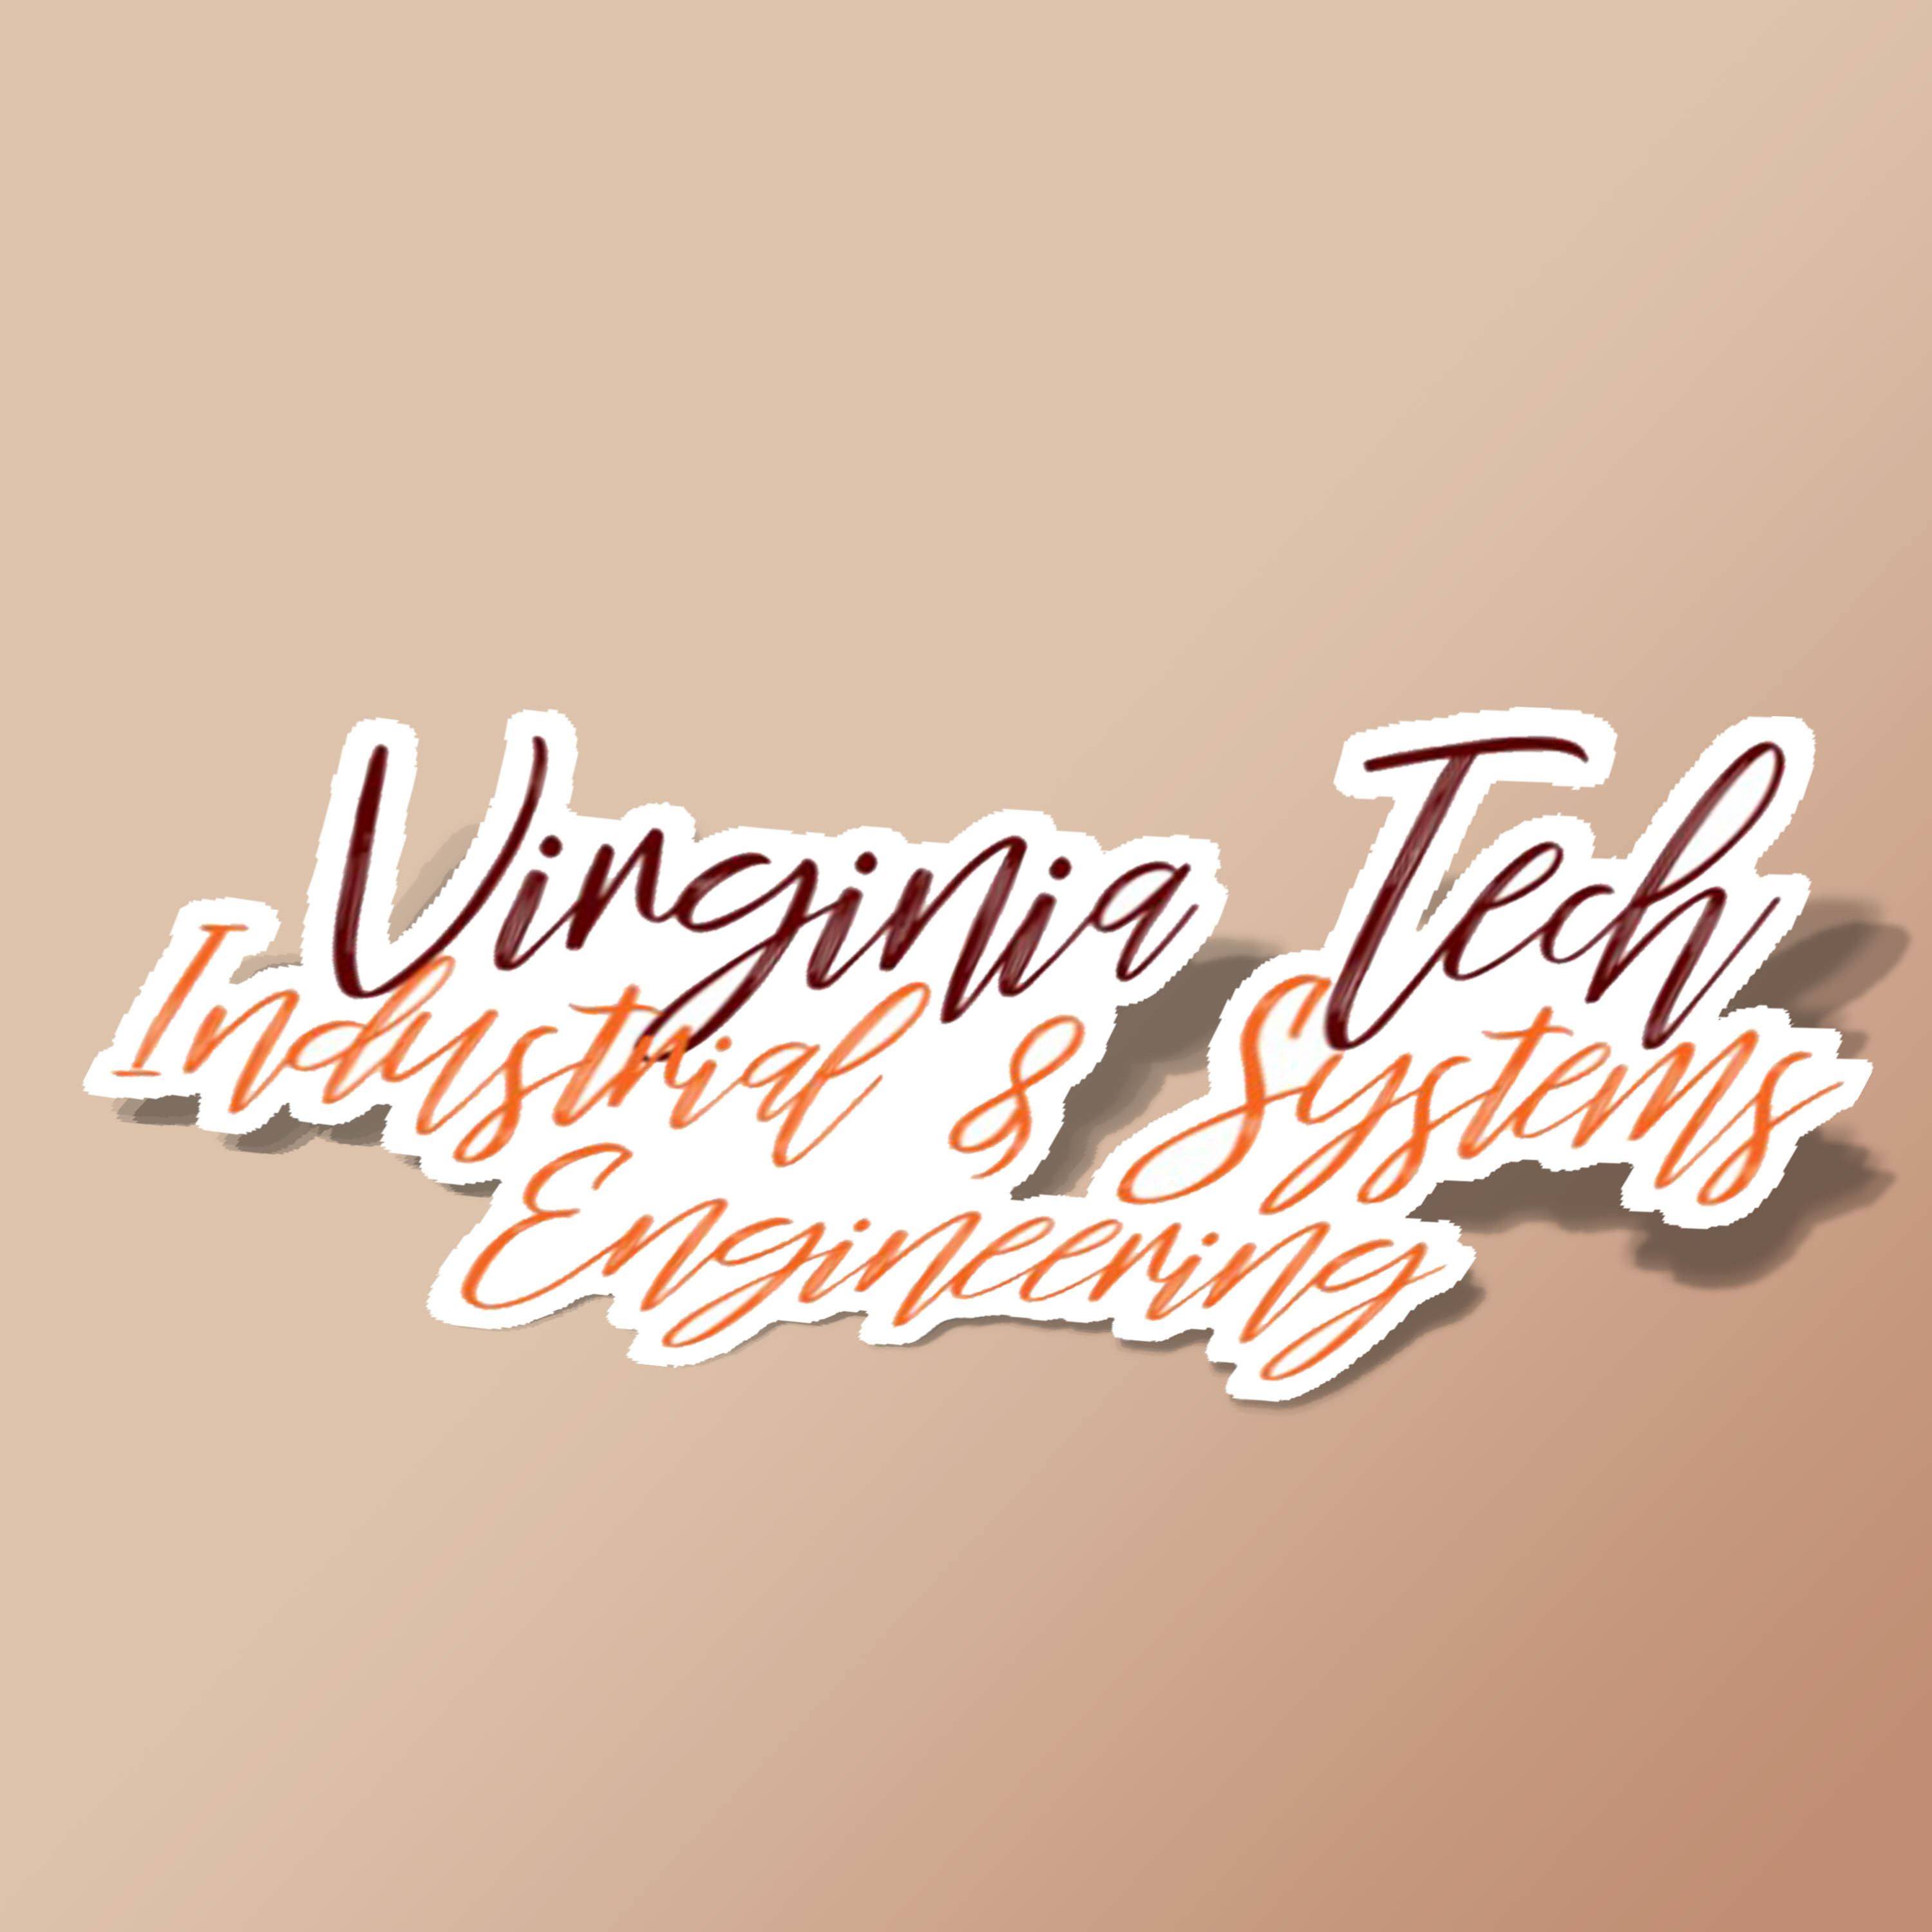 Virginia Tech Industrial and Systems Engineering 2